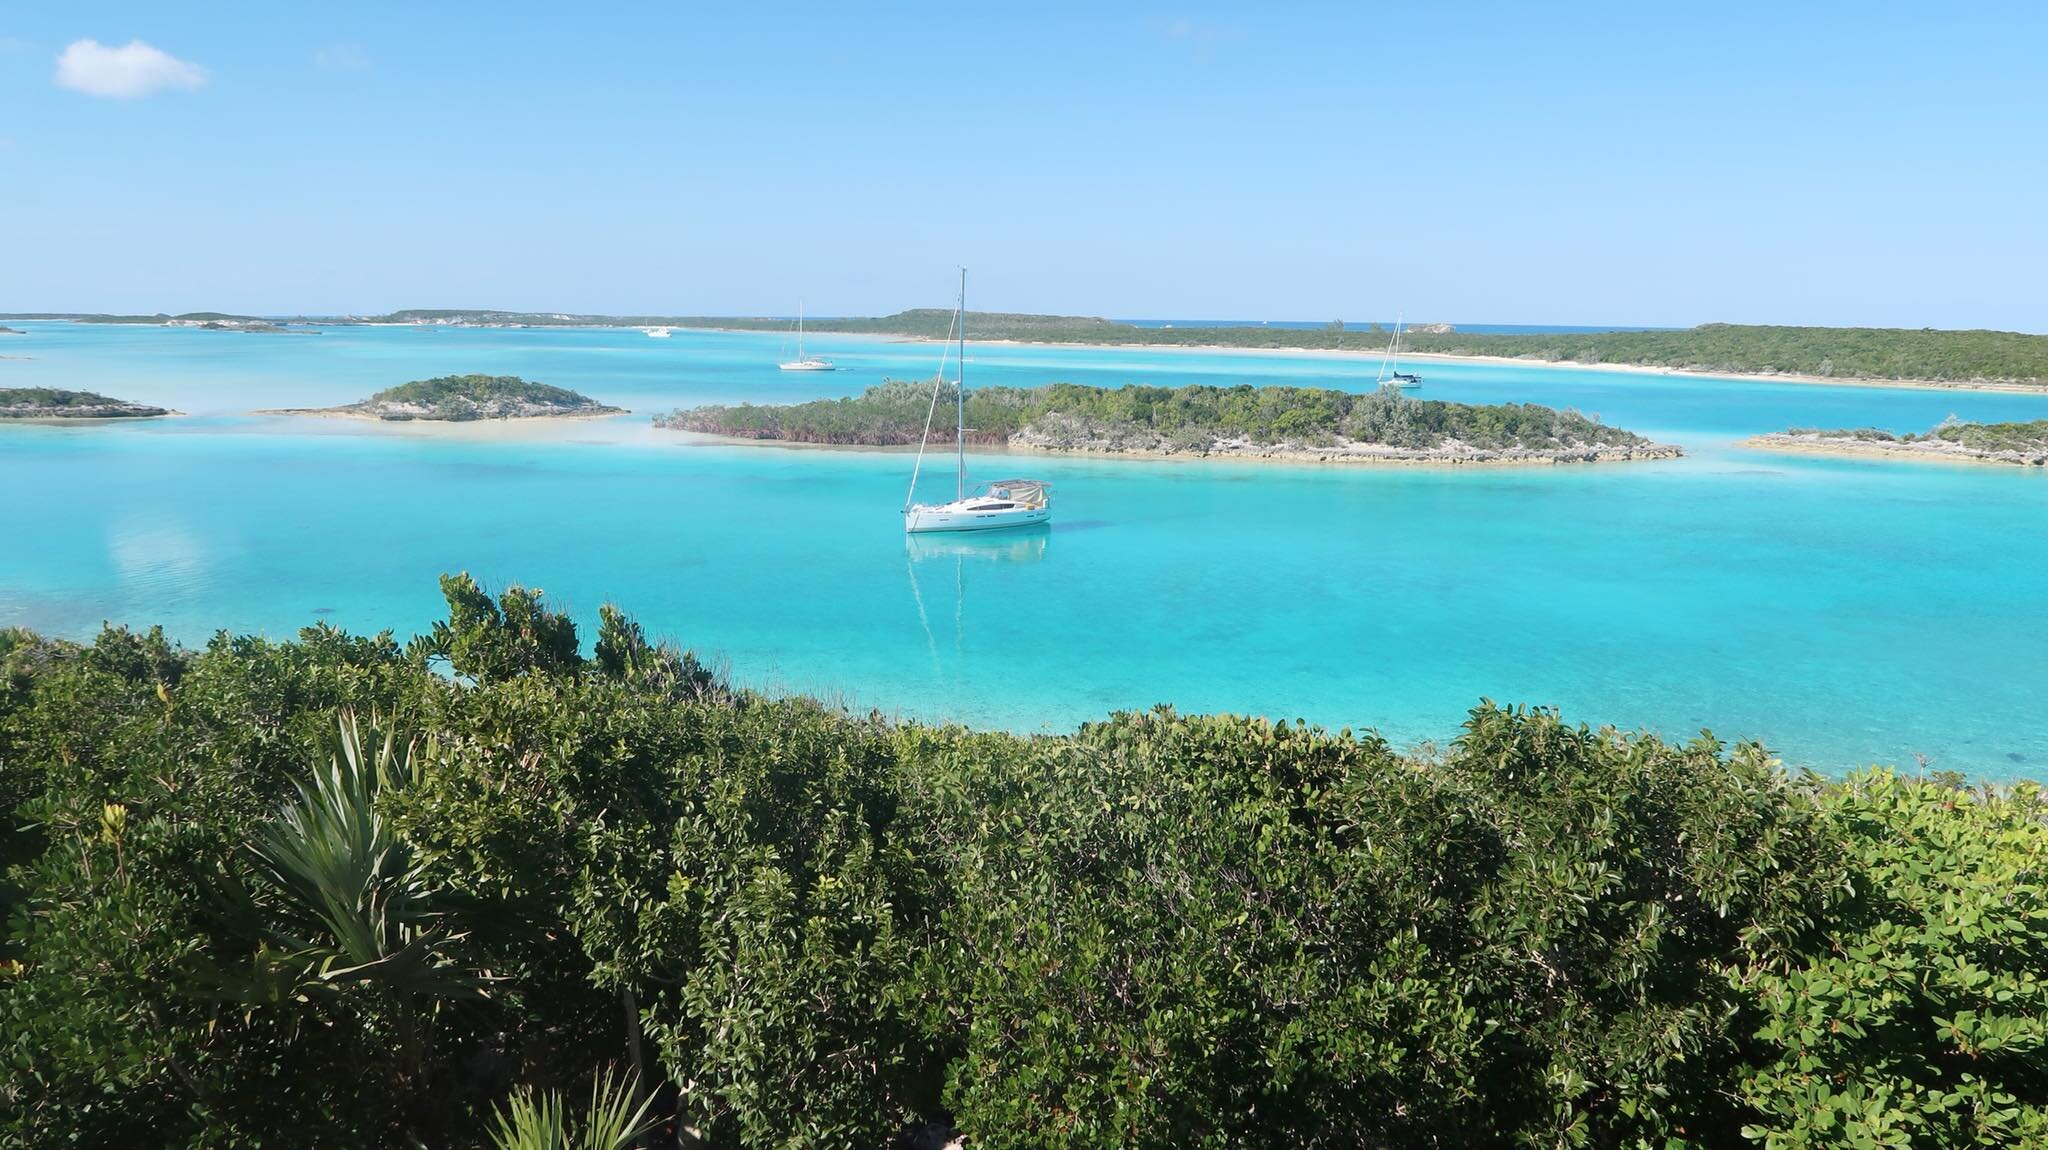 How To Apply For Bahamas Tourist Visa With Your Philippines Passport